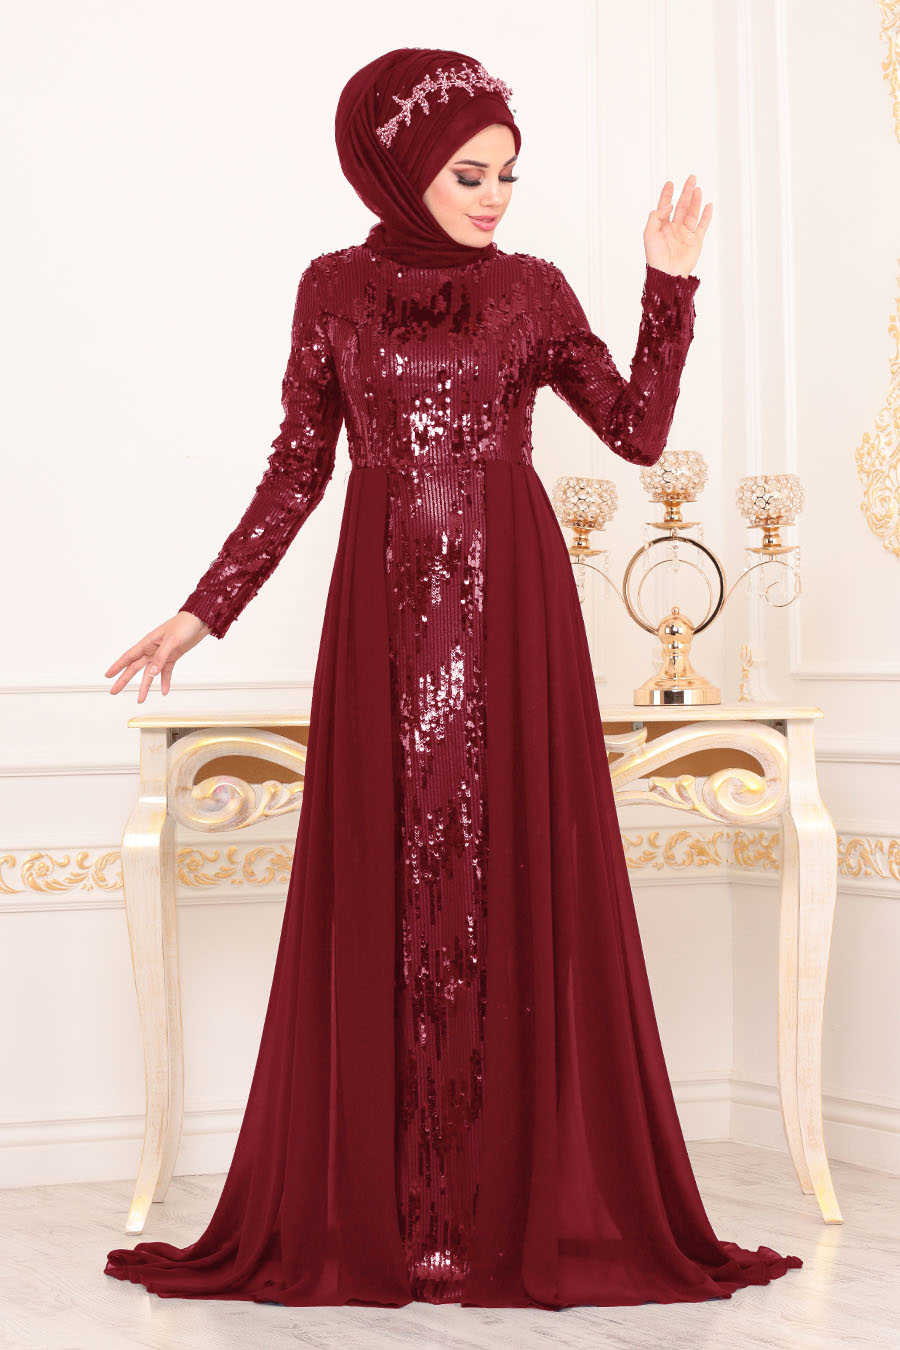 Neva Style - Claret Red Hijab Evening Dress 8590BR